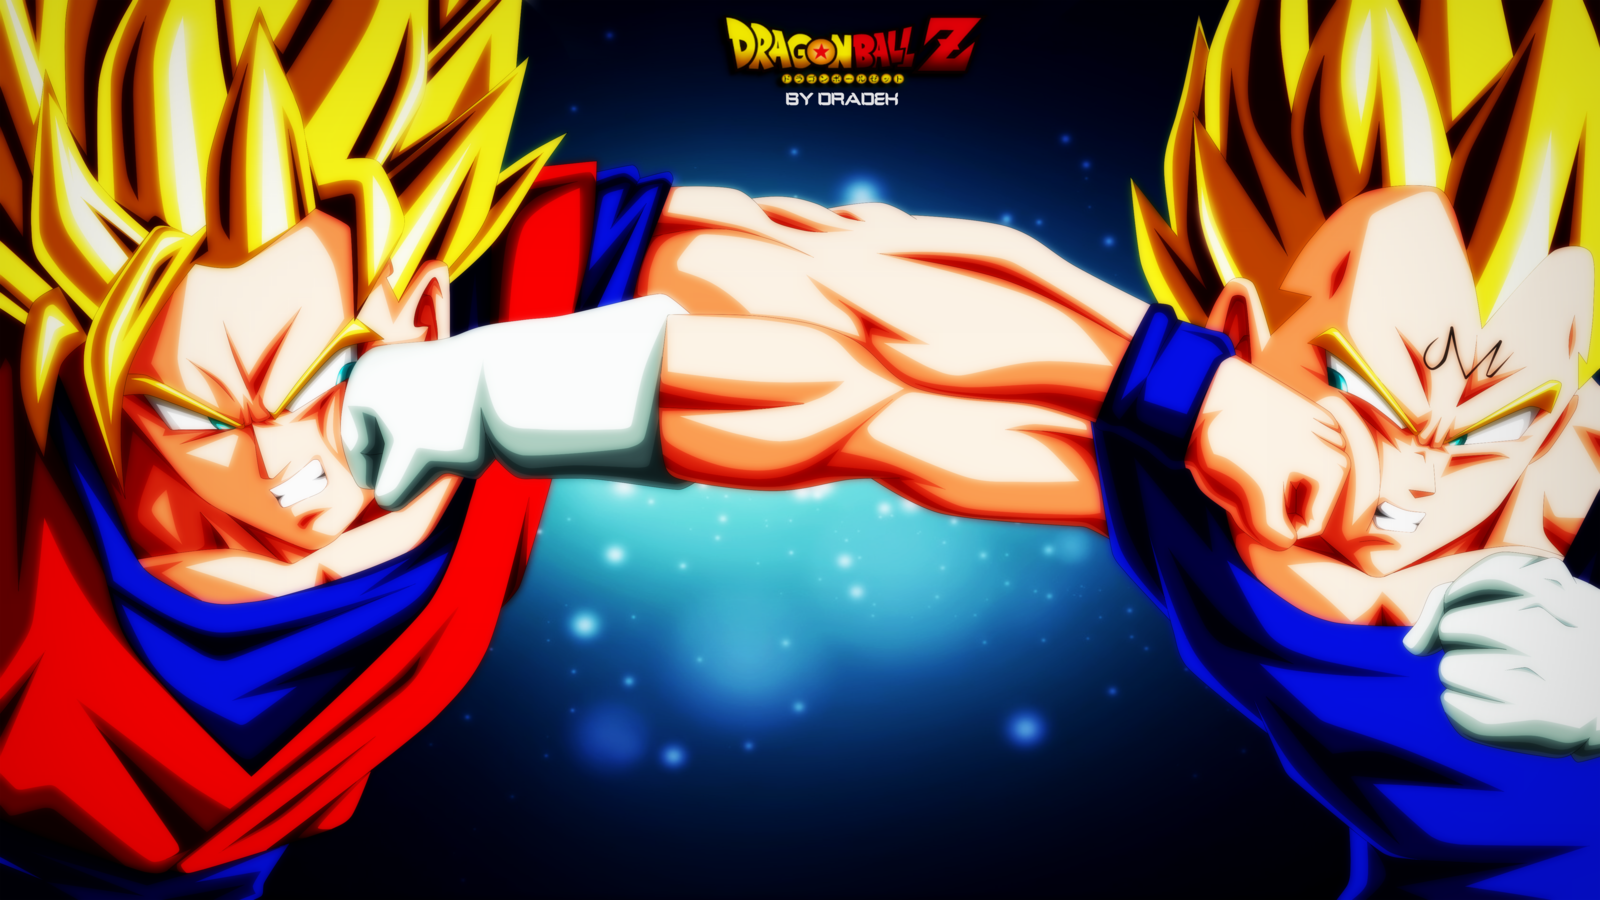 819 Dragon Ball Z Hd Wallpapers Background Images Wallpaper Abyss Page 7